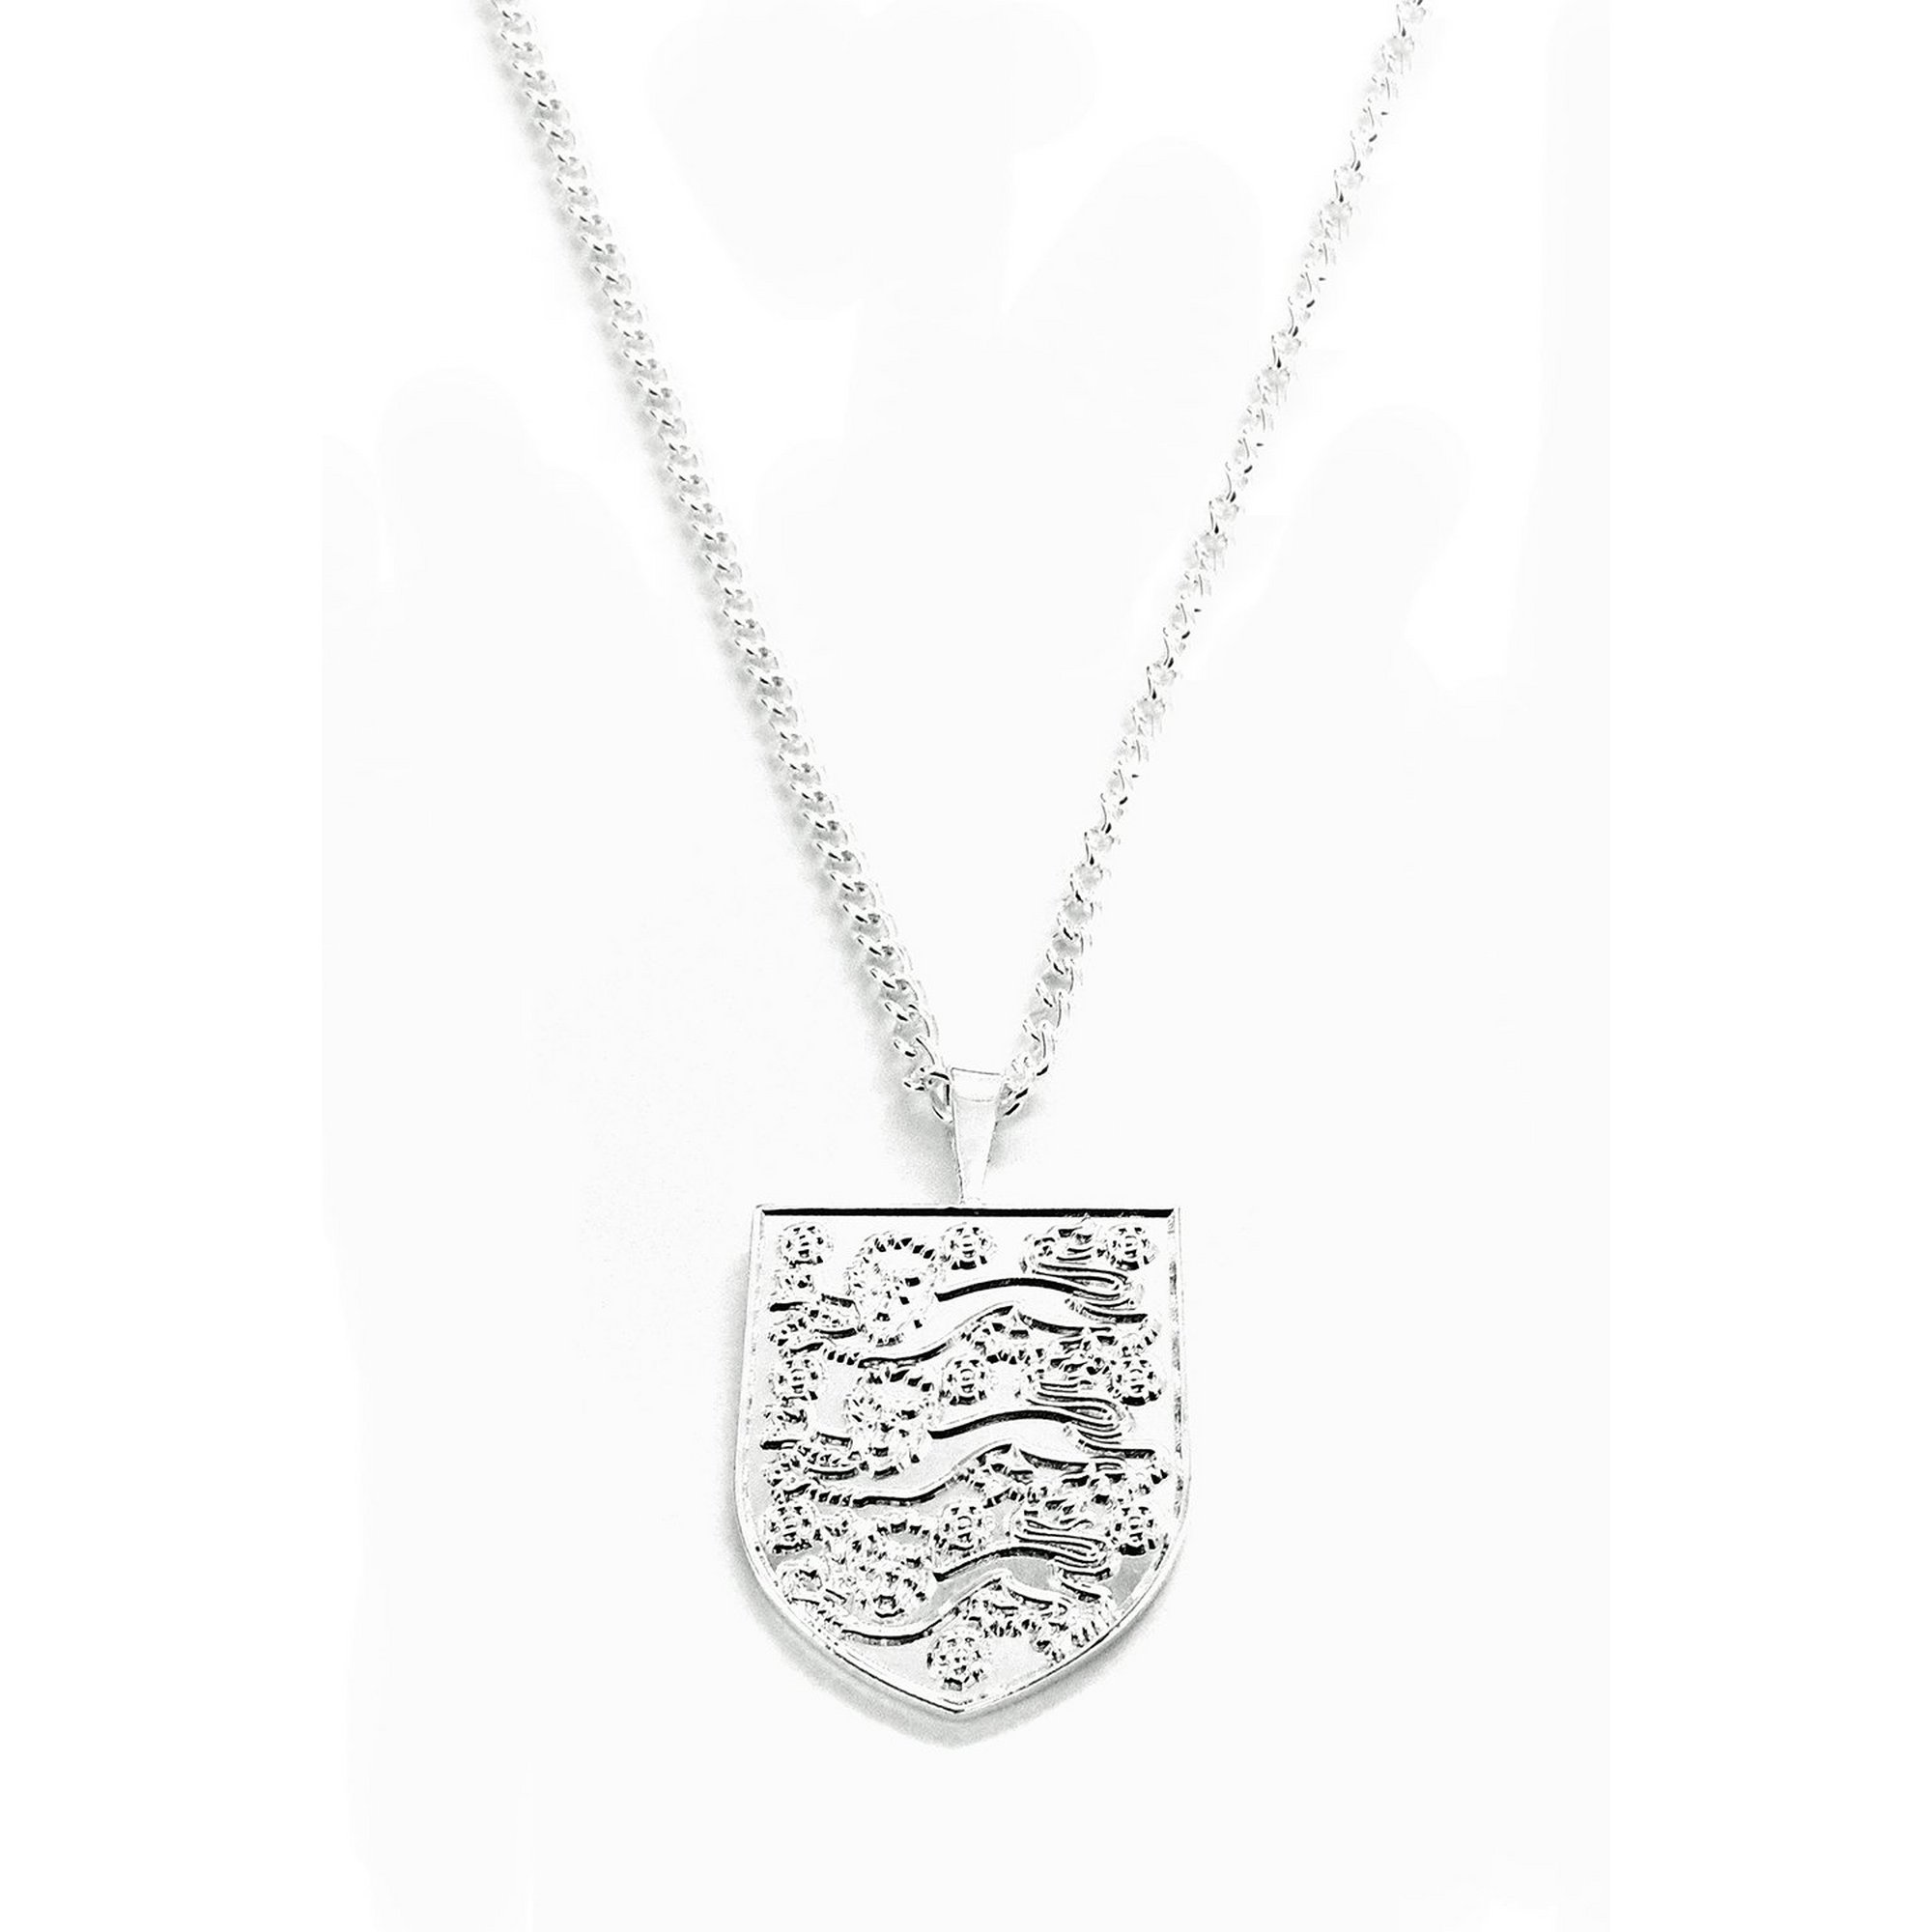 Image of England FC Silver Plated Crest Pendant and Chain